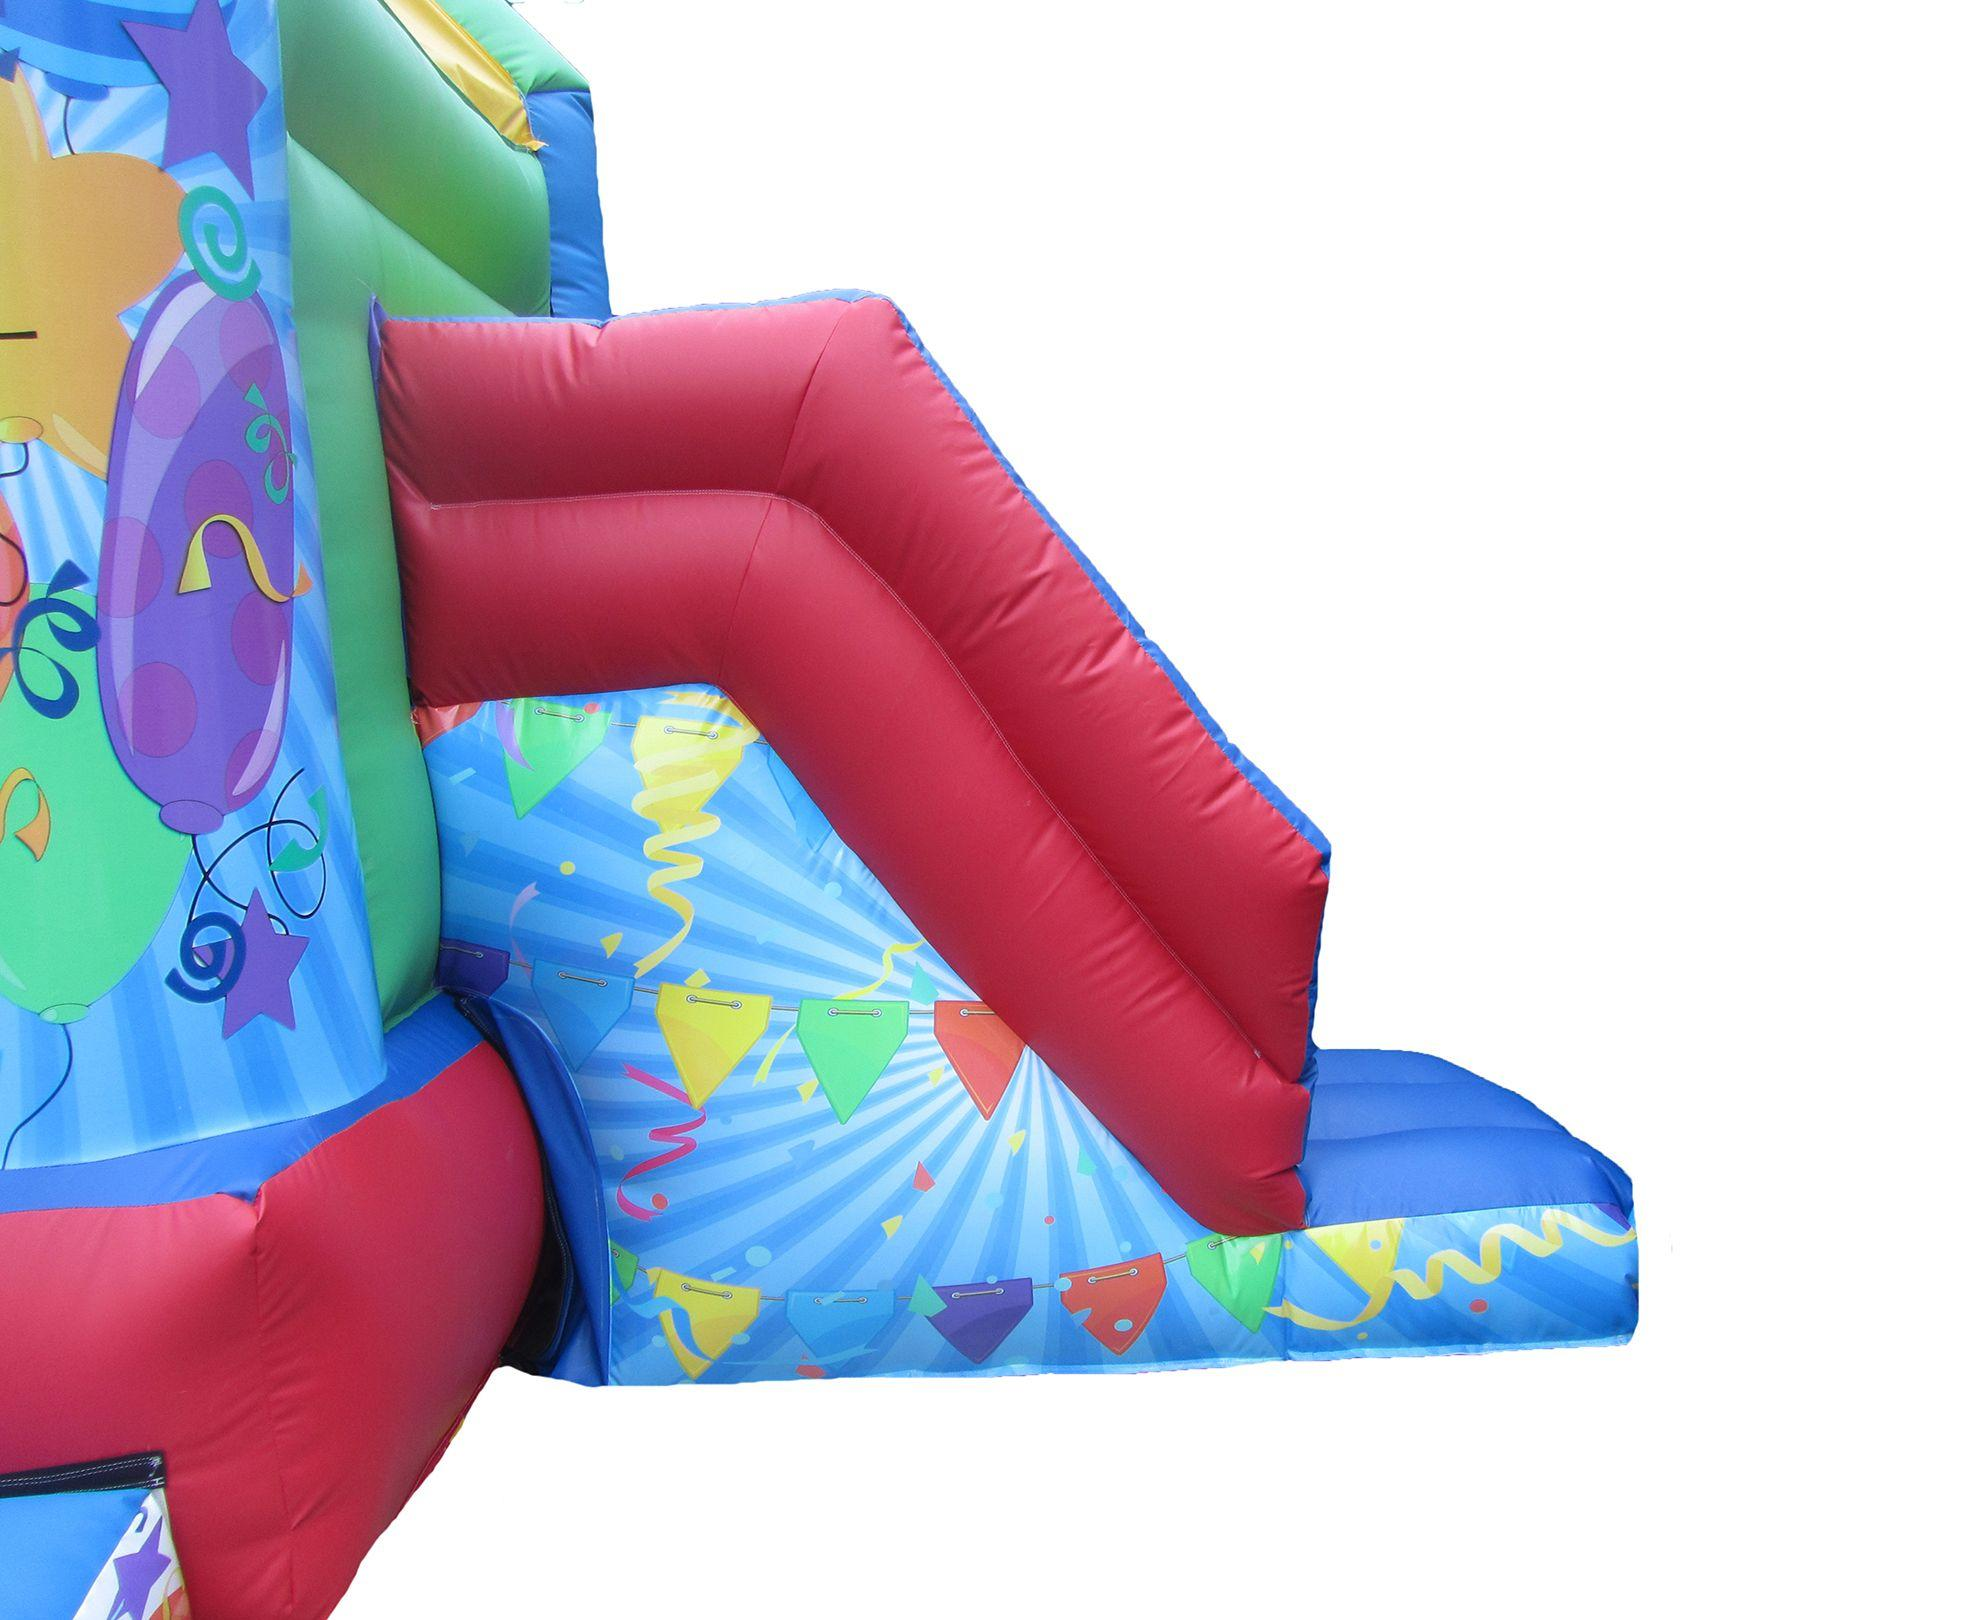 17x15 unisex printed party combi bouncy castle slide compressor Copy